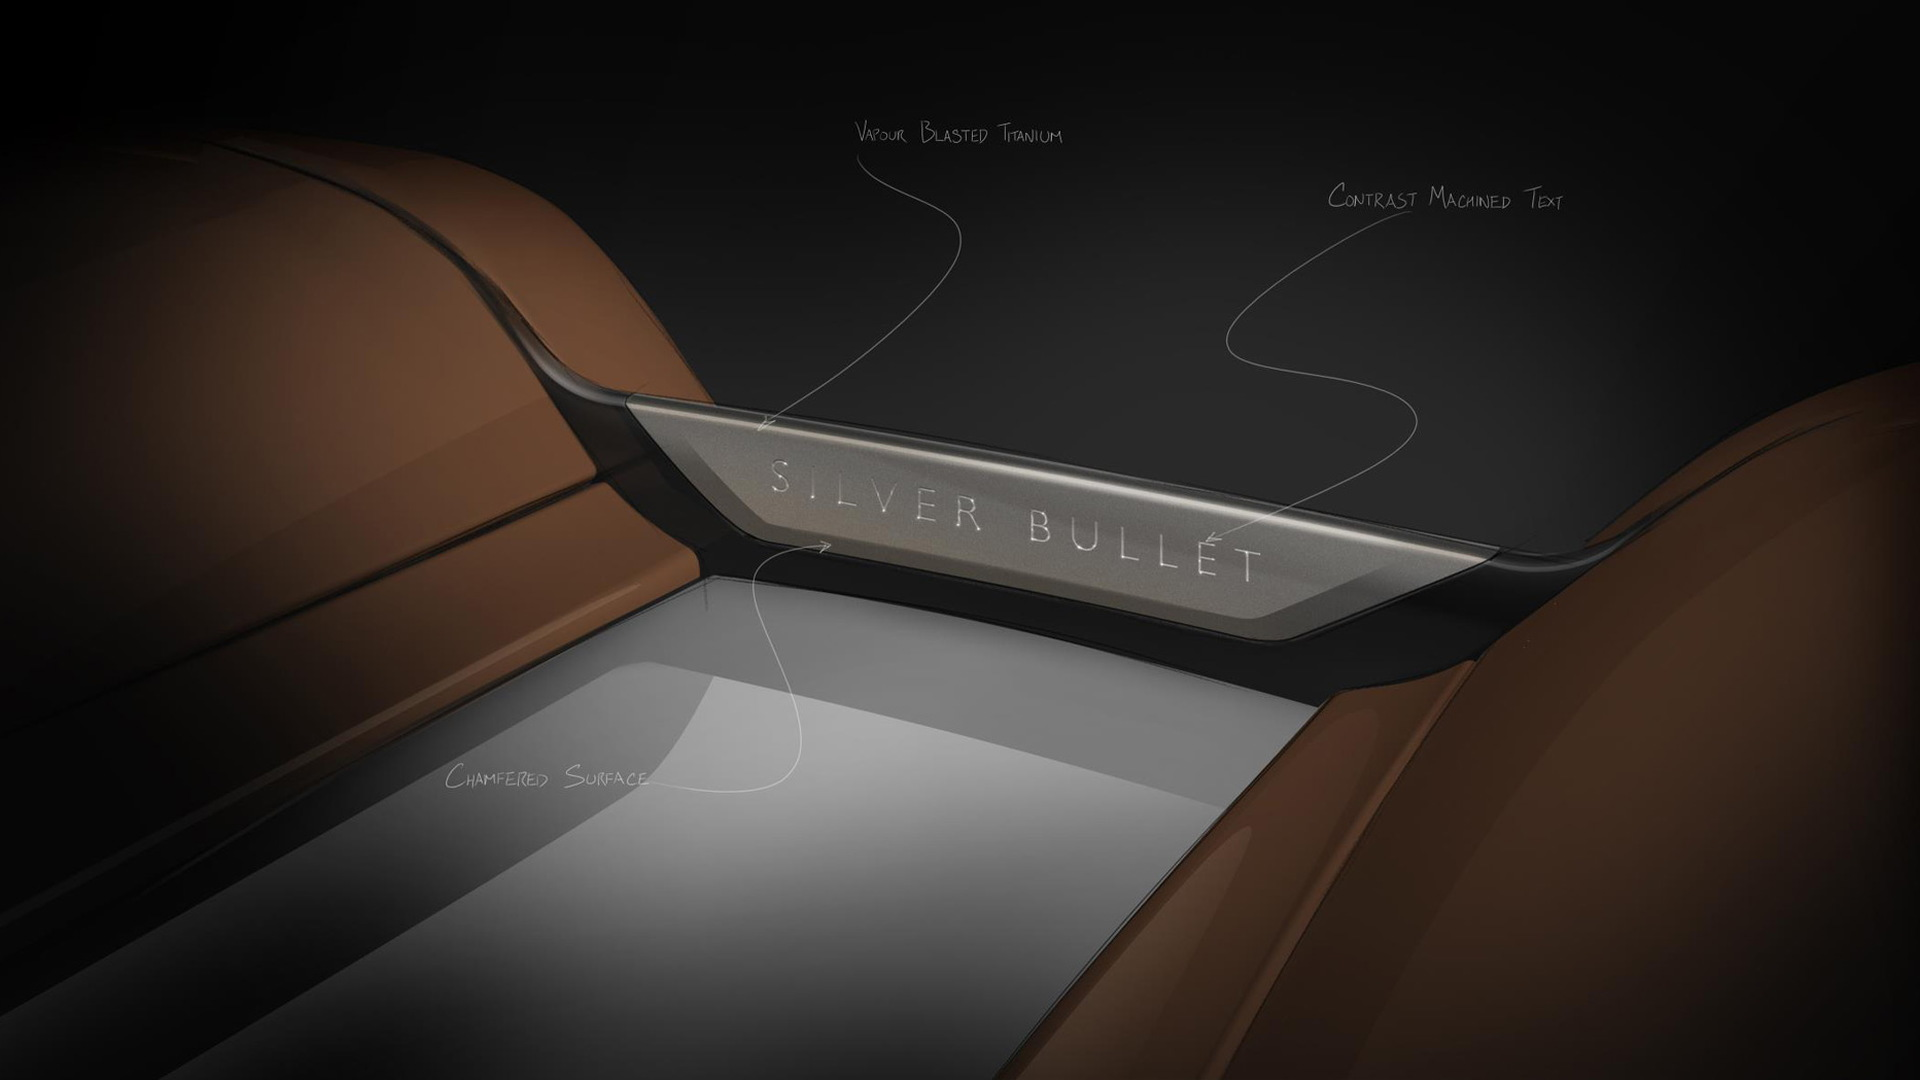 Teaser for Rolls-Royce Dawn Silver Bullet Collection